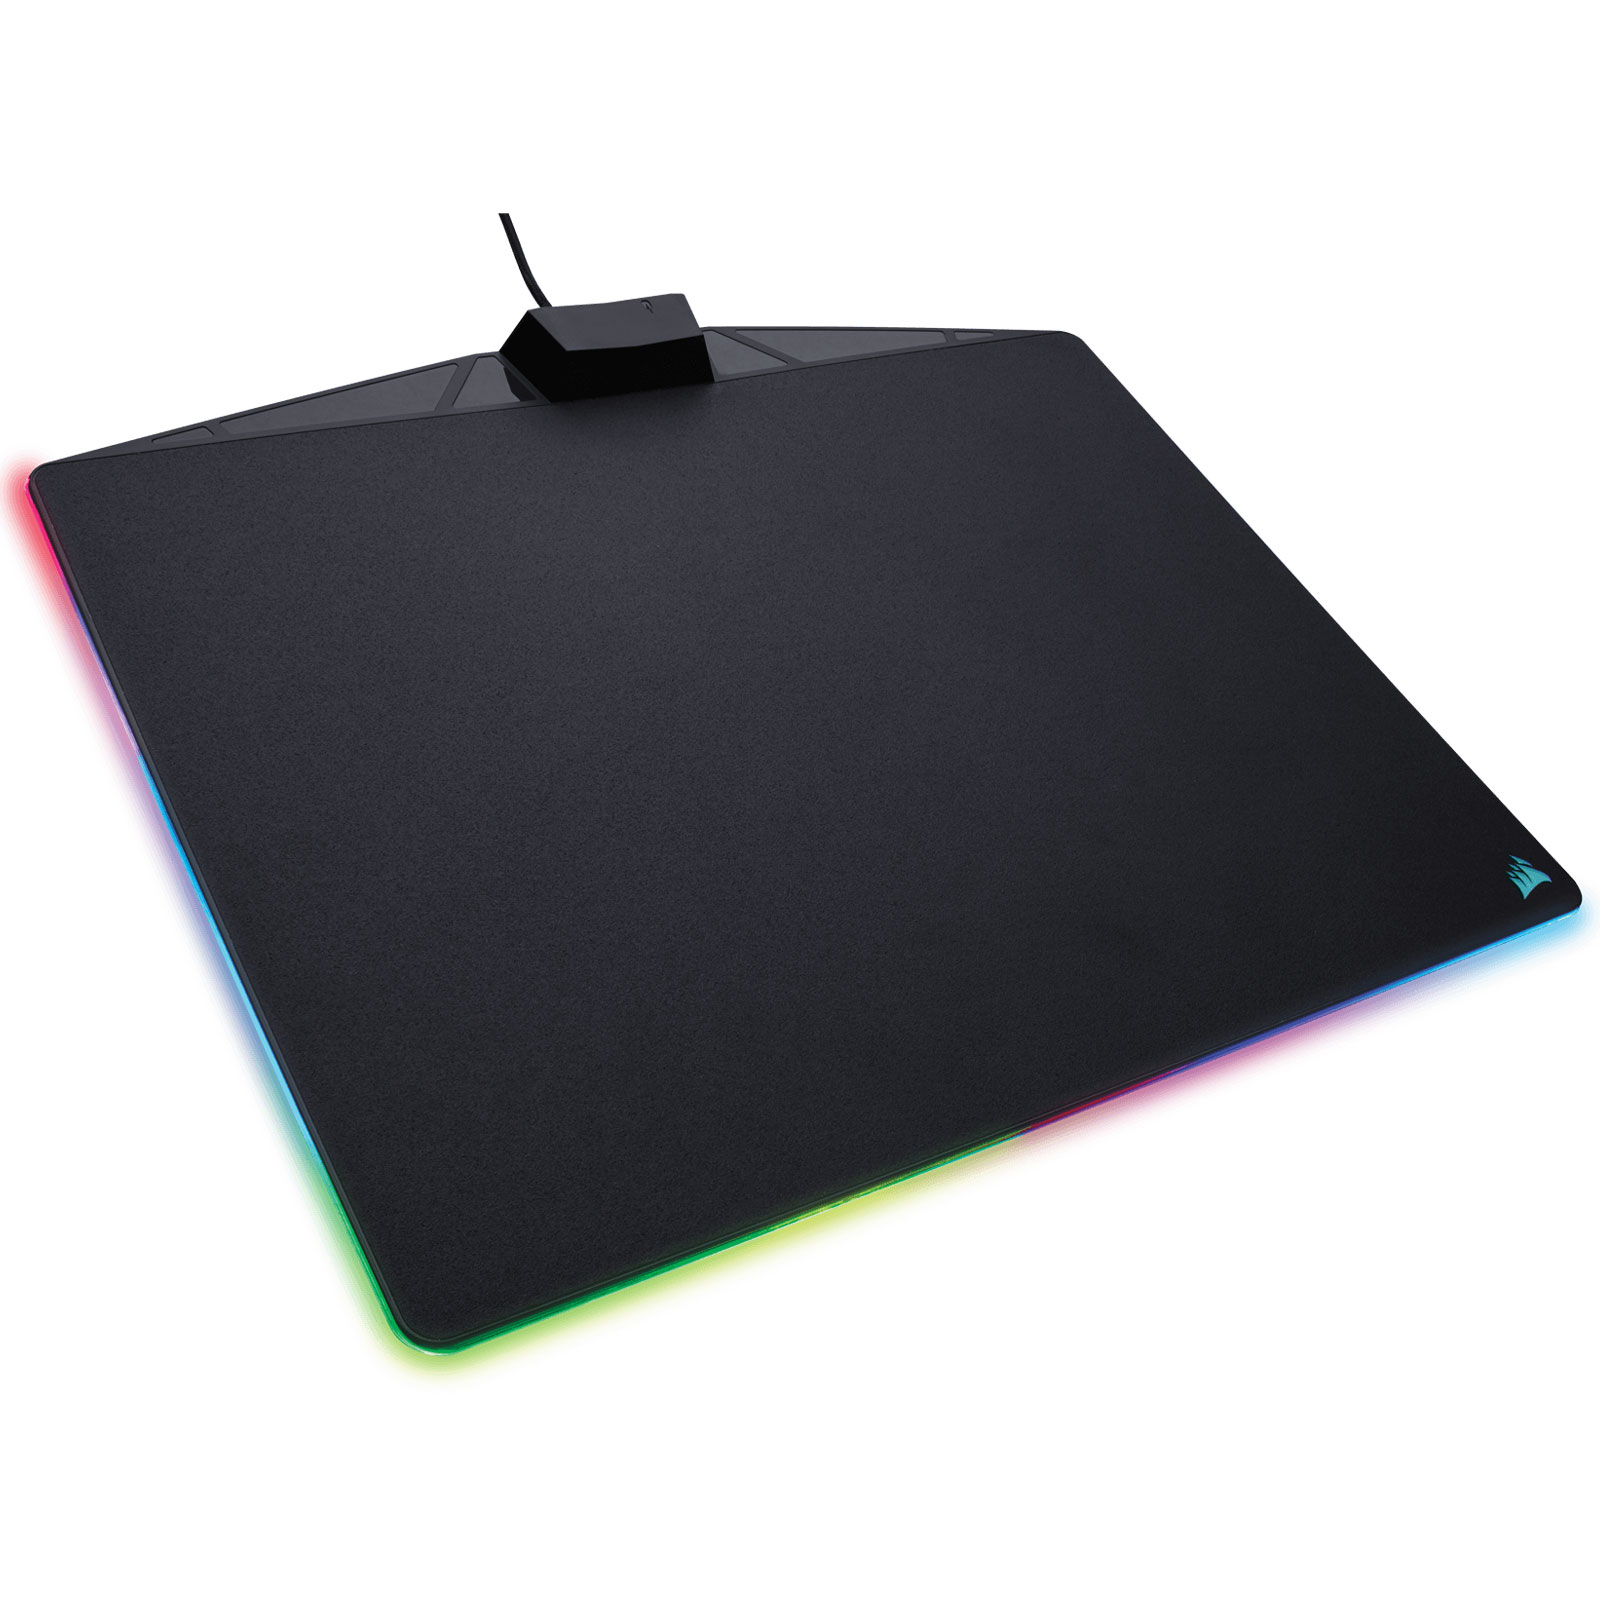 Photo Tapis Tapis De Souris Avec Photo Interchangeable